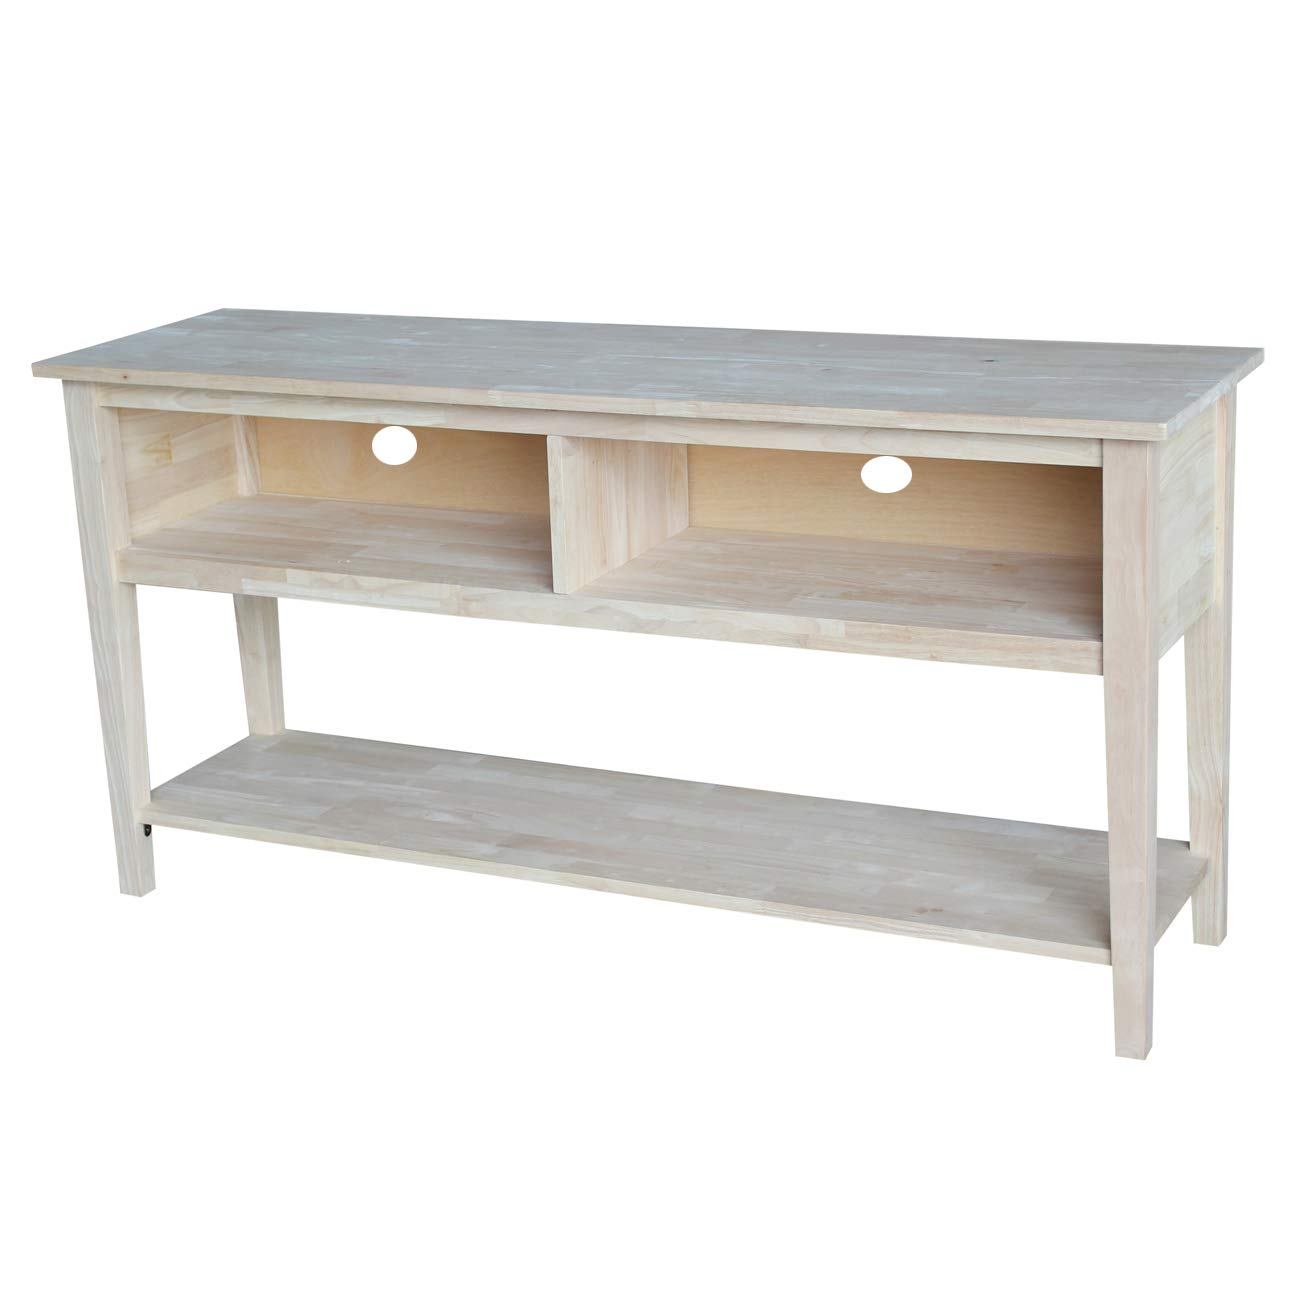 International Concepts Unfinished Entertainment/TV Stand, 60-Inch, Unfinished by International Concepts